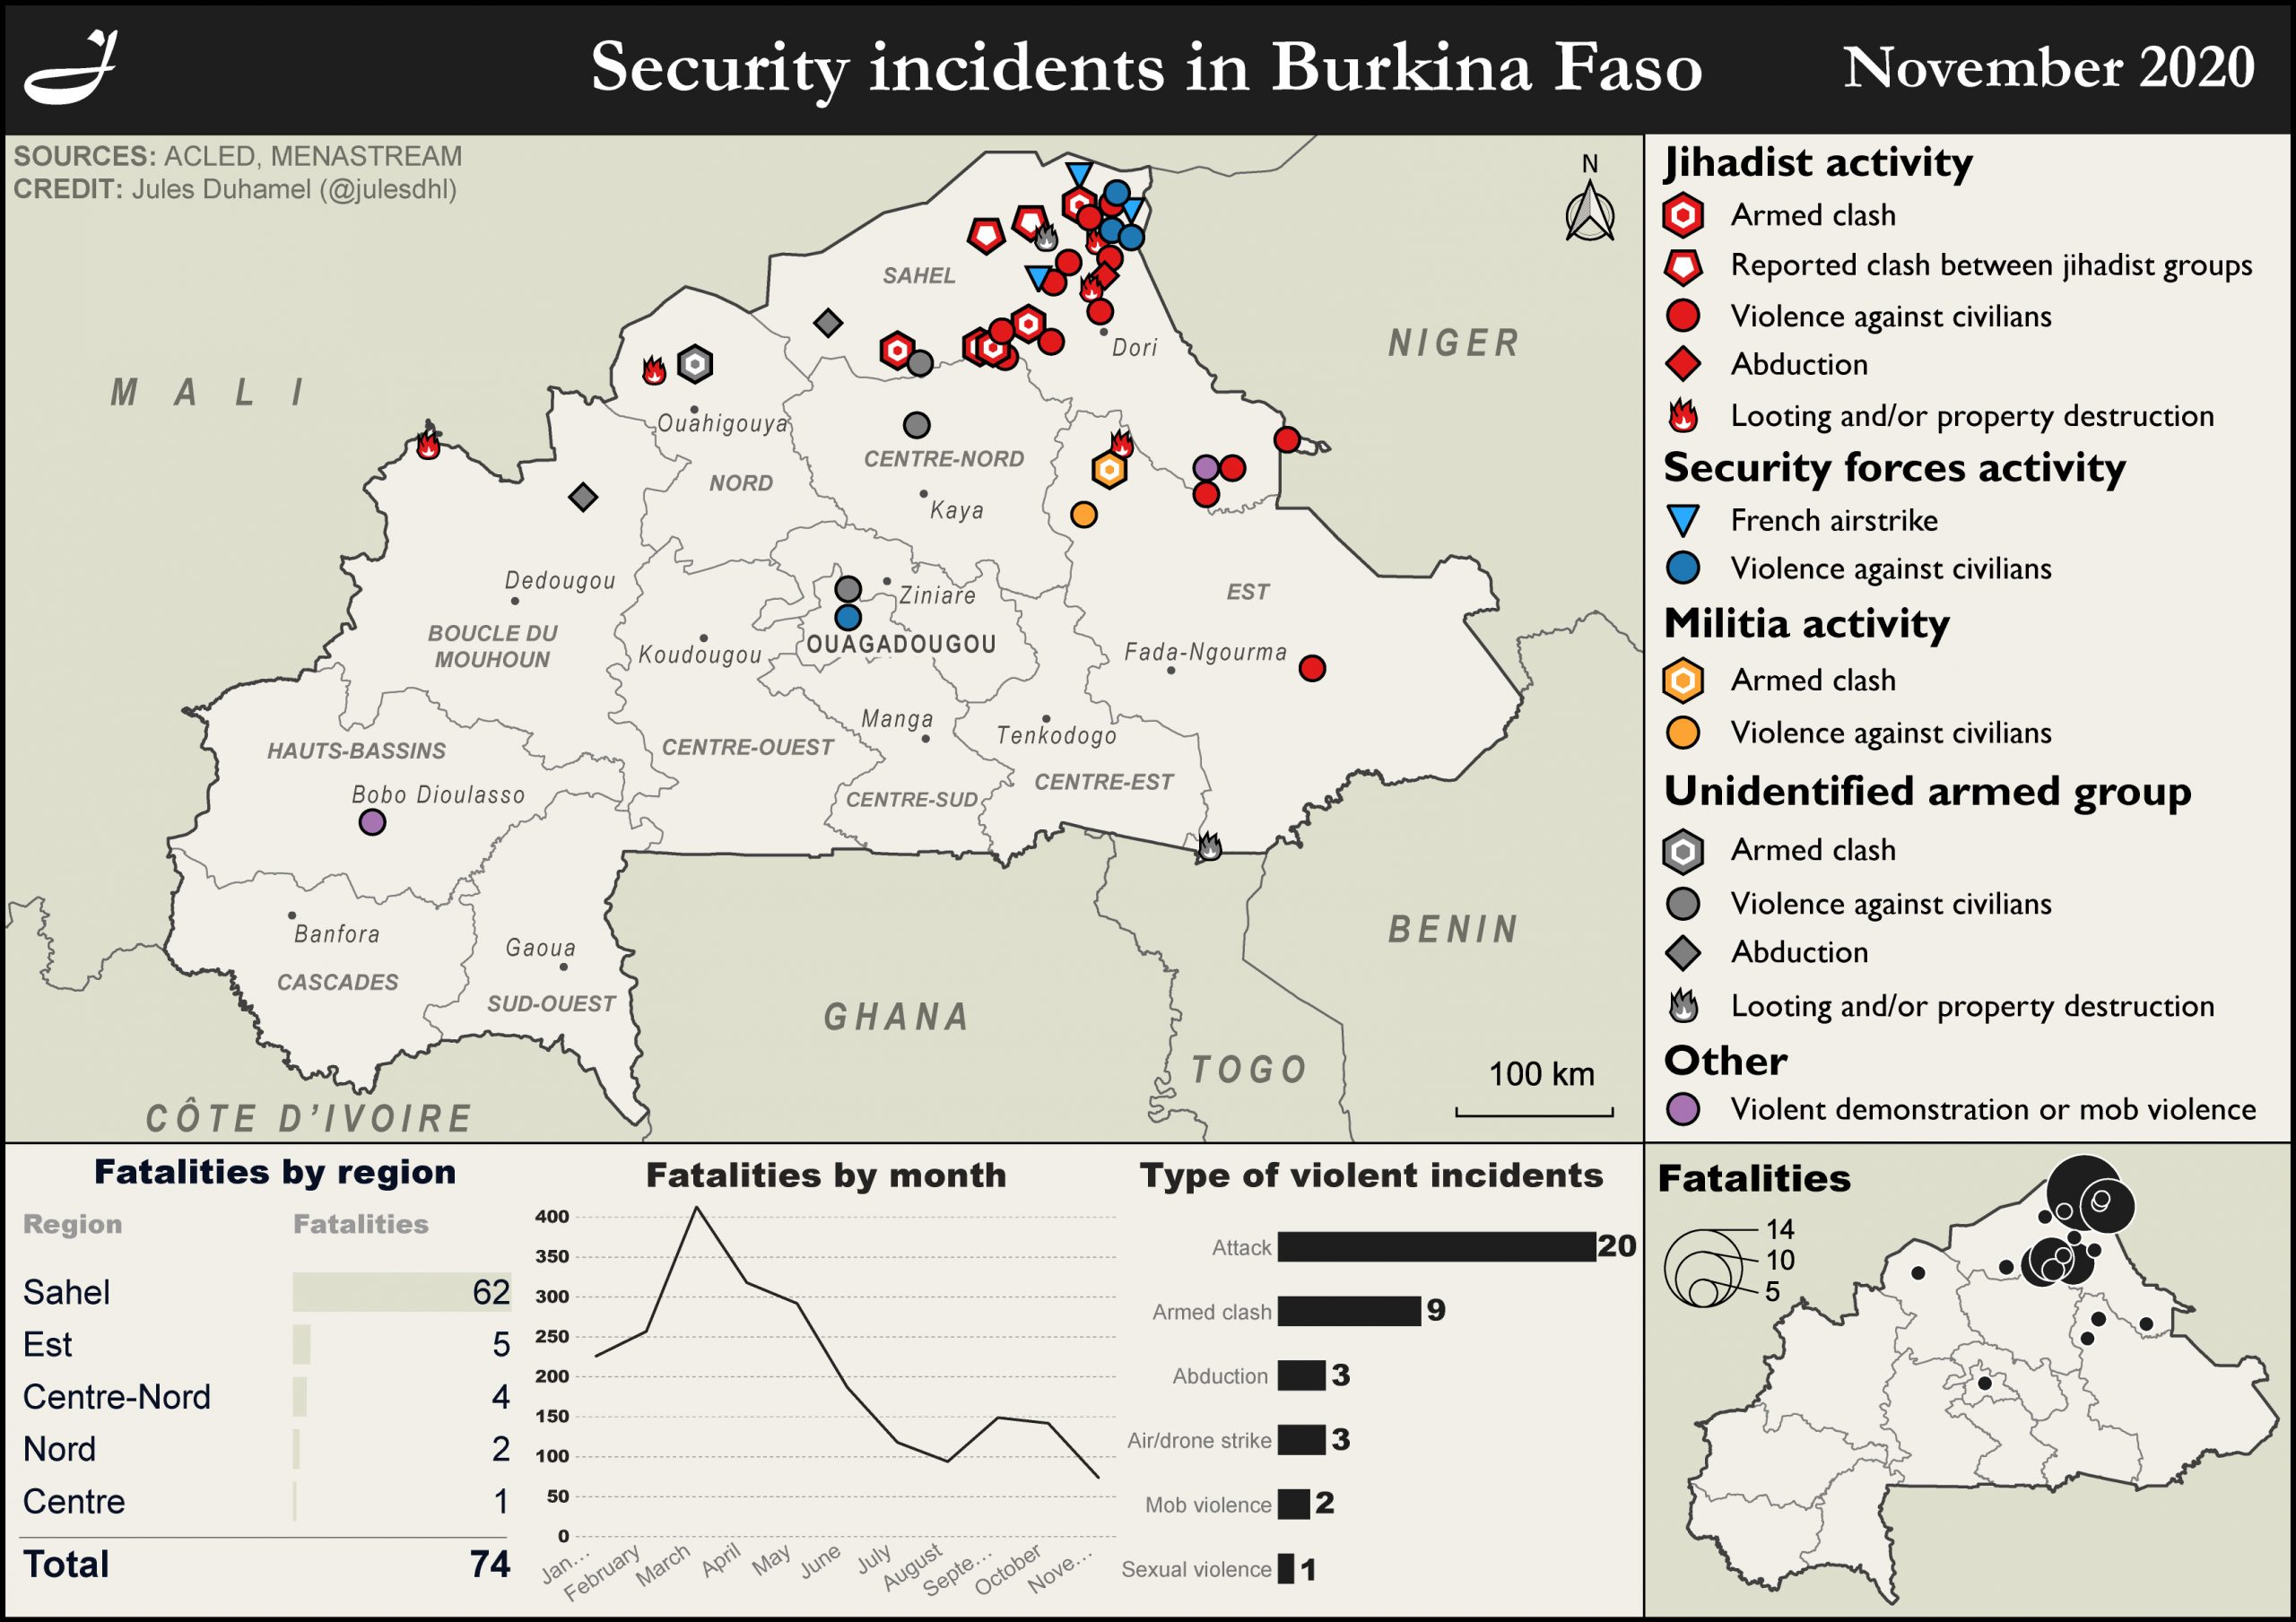 ]Map of security incidents in Burkina Faso, November 2020